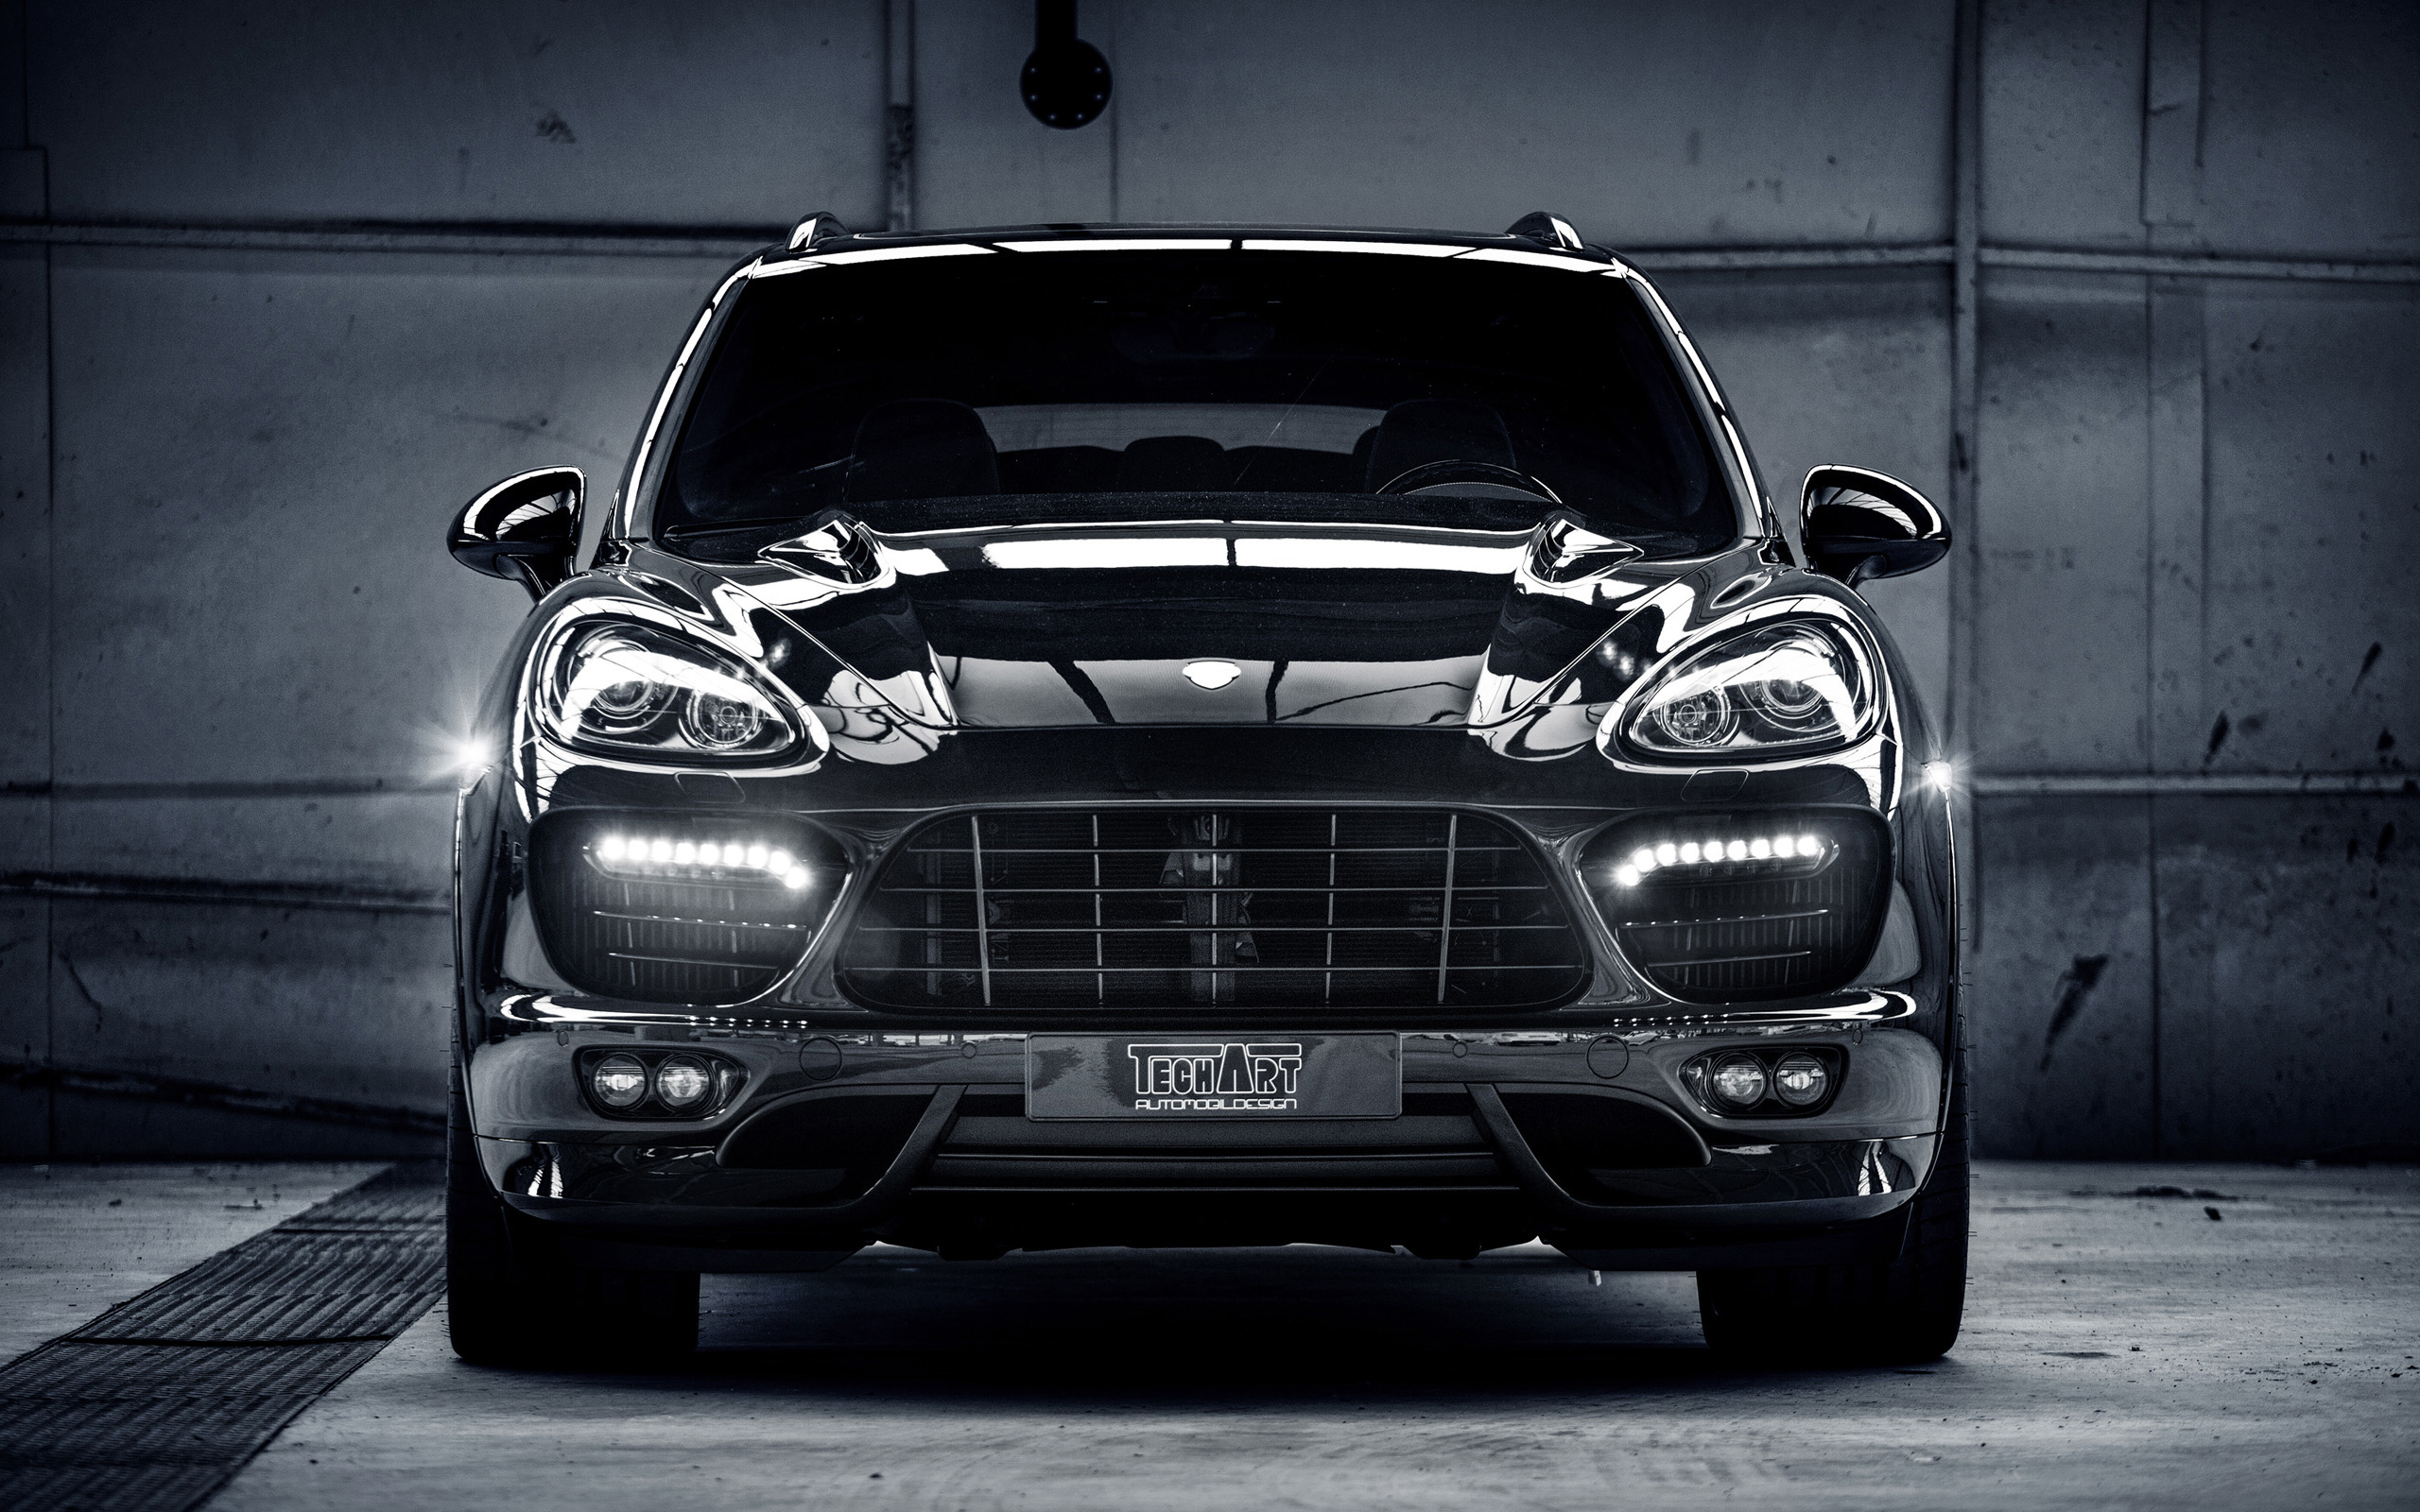 TechArt Porsche Cayenne S Diesel 2013 Wallpaper | HD Car Wallpapers